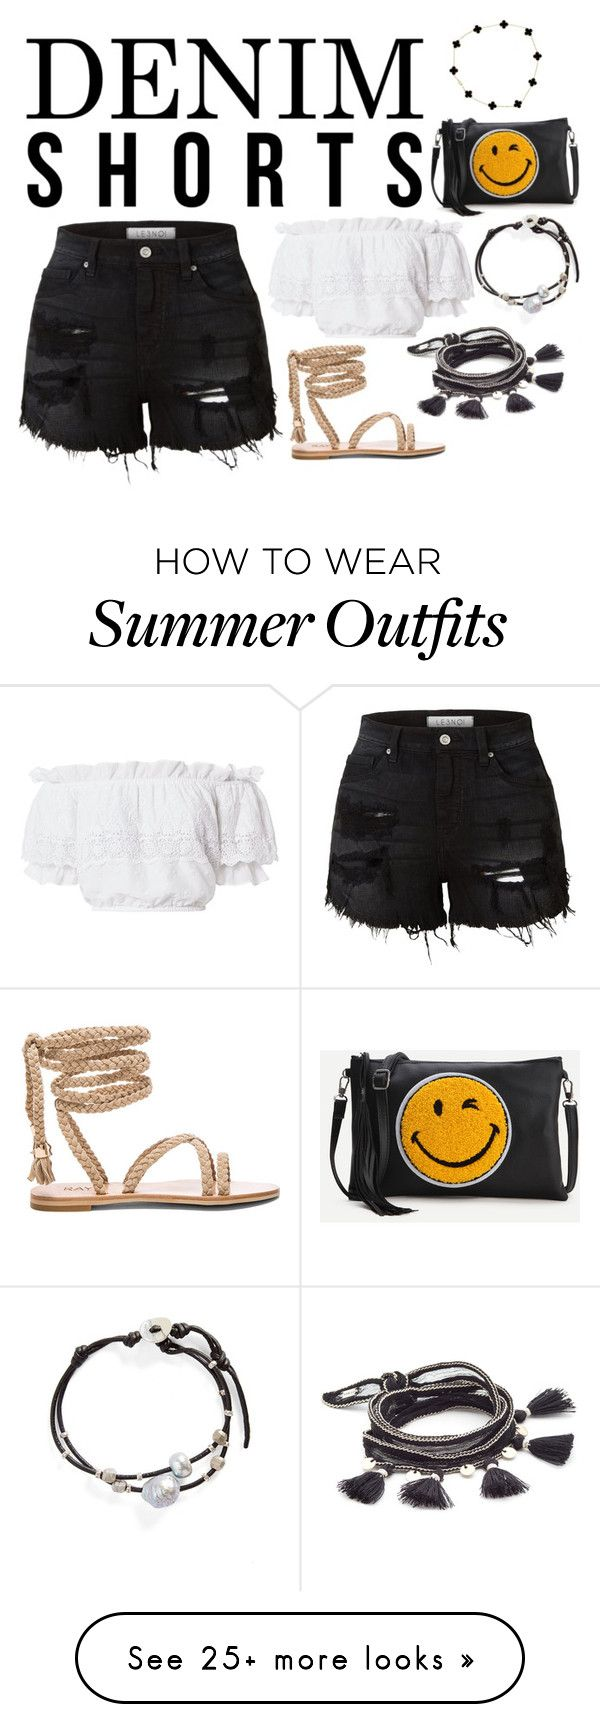 """""""Trendy Outfit"""" by jmrynar on Polyvore featuring Chan Luu, LE3NO, Love..."""